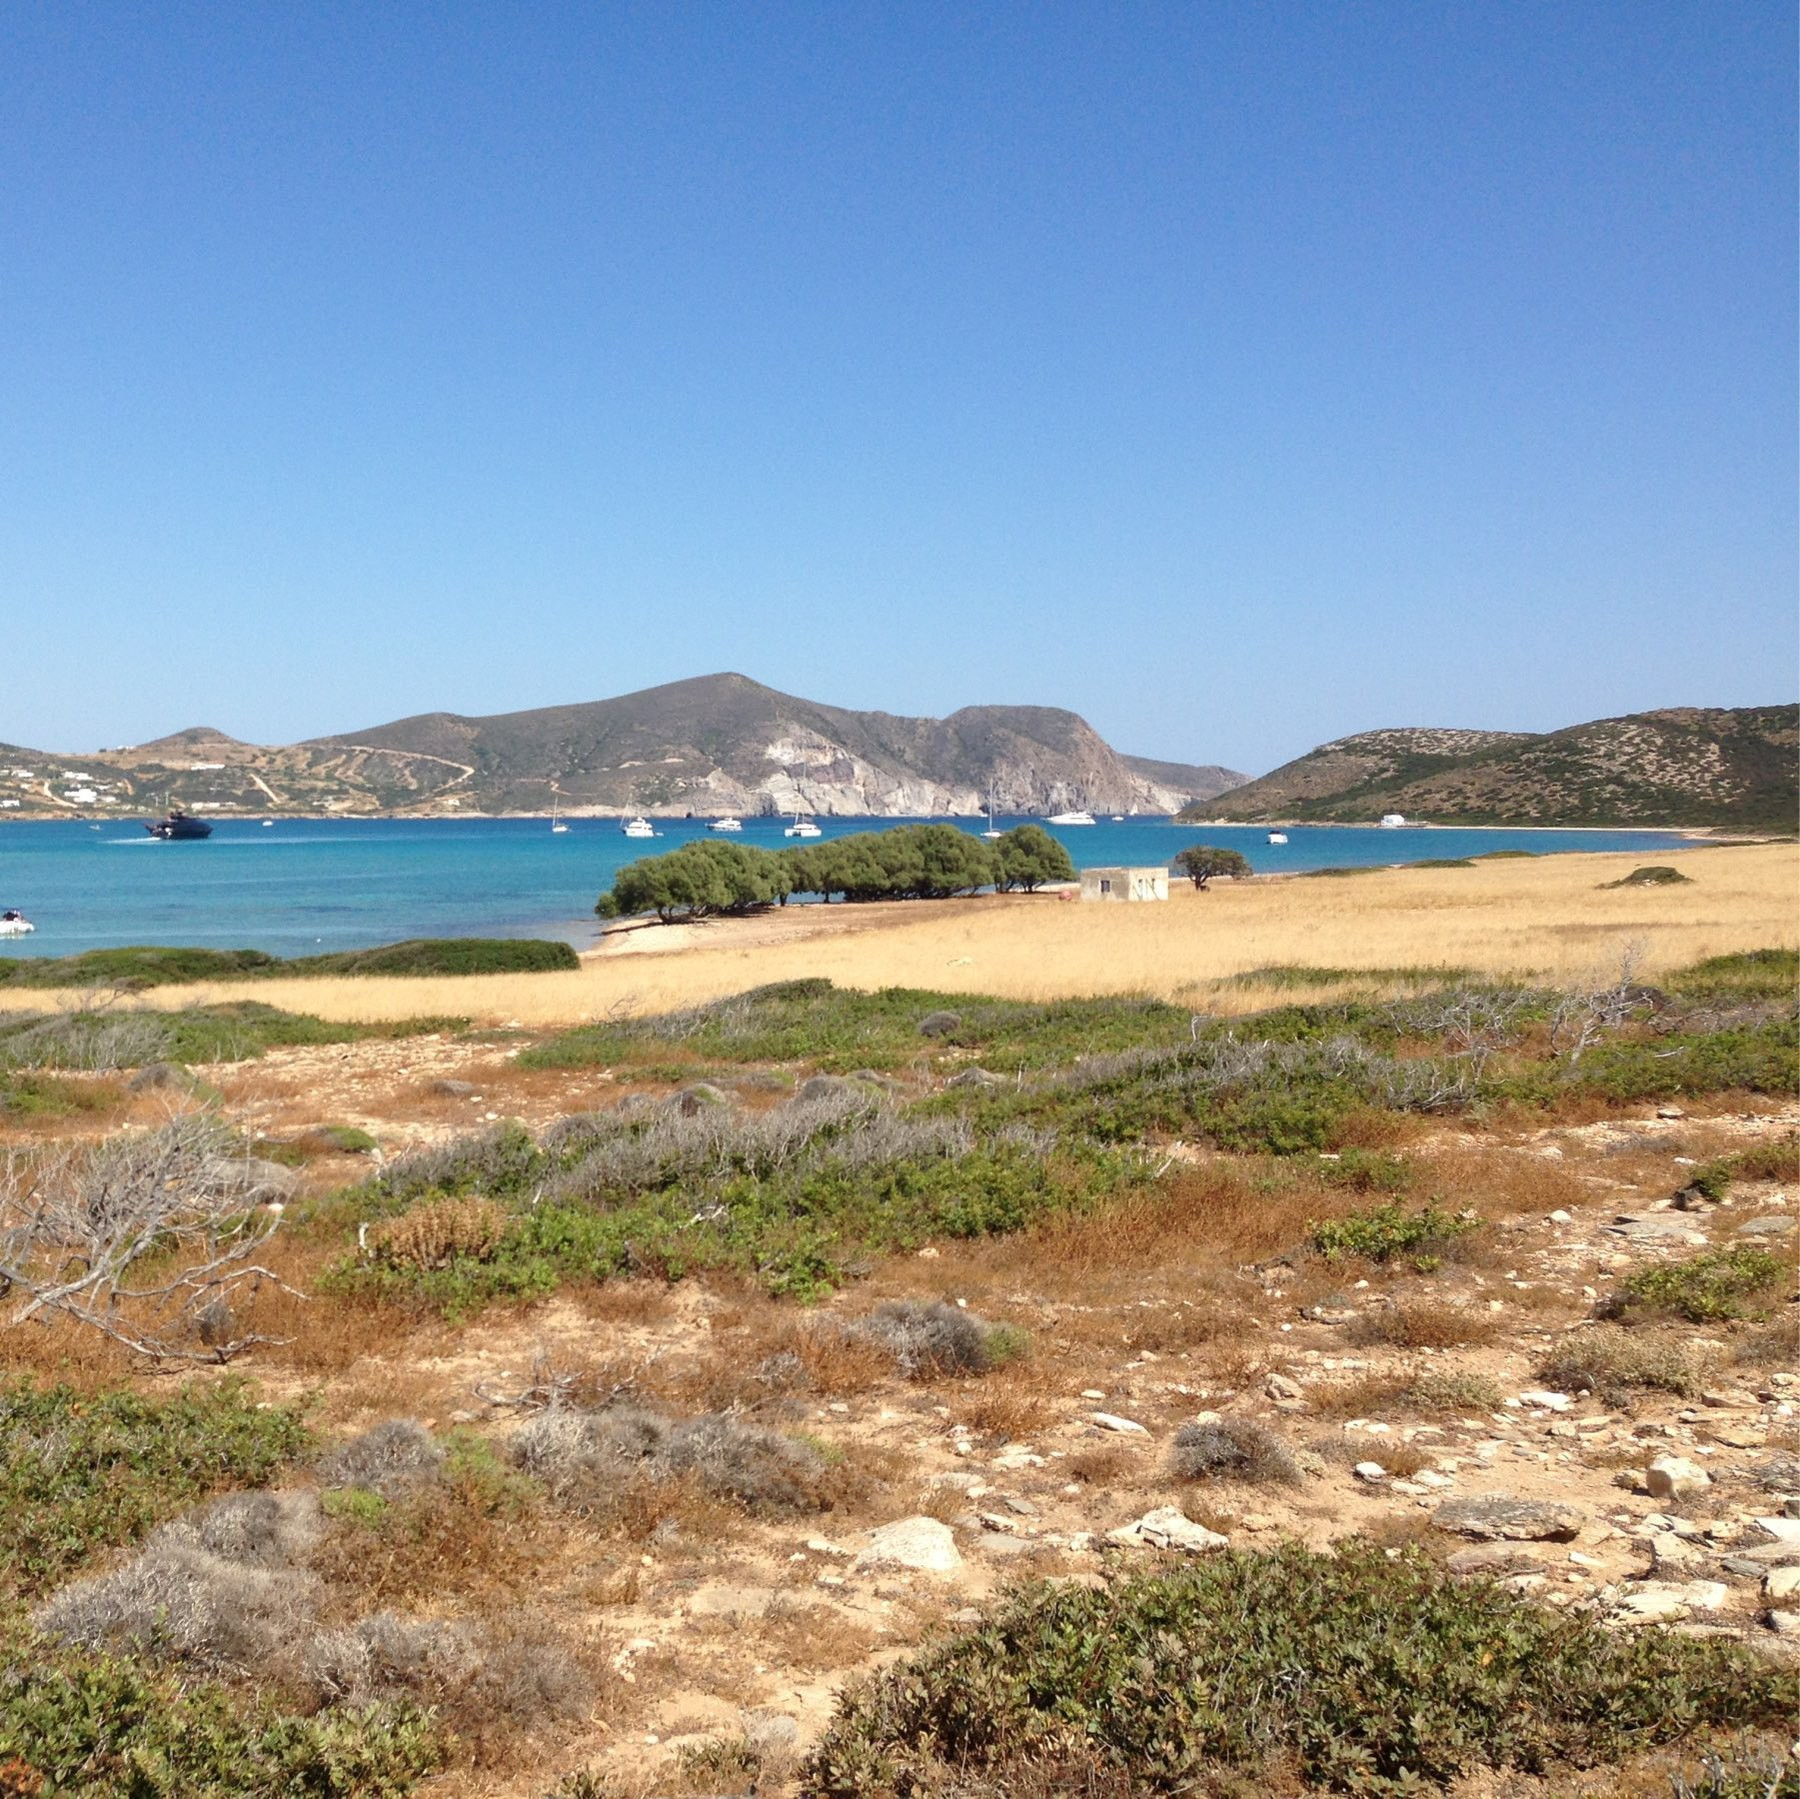 view from Despotiko toward Antiparos